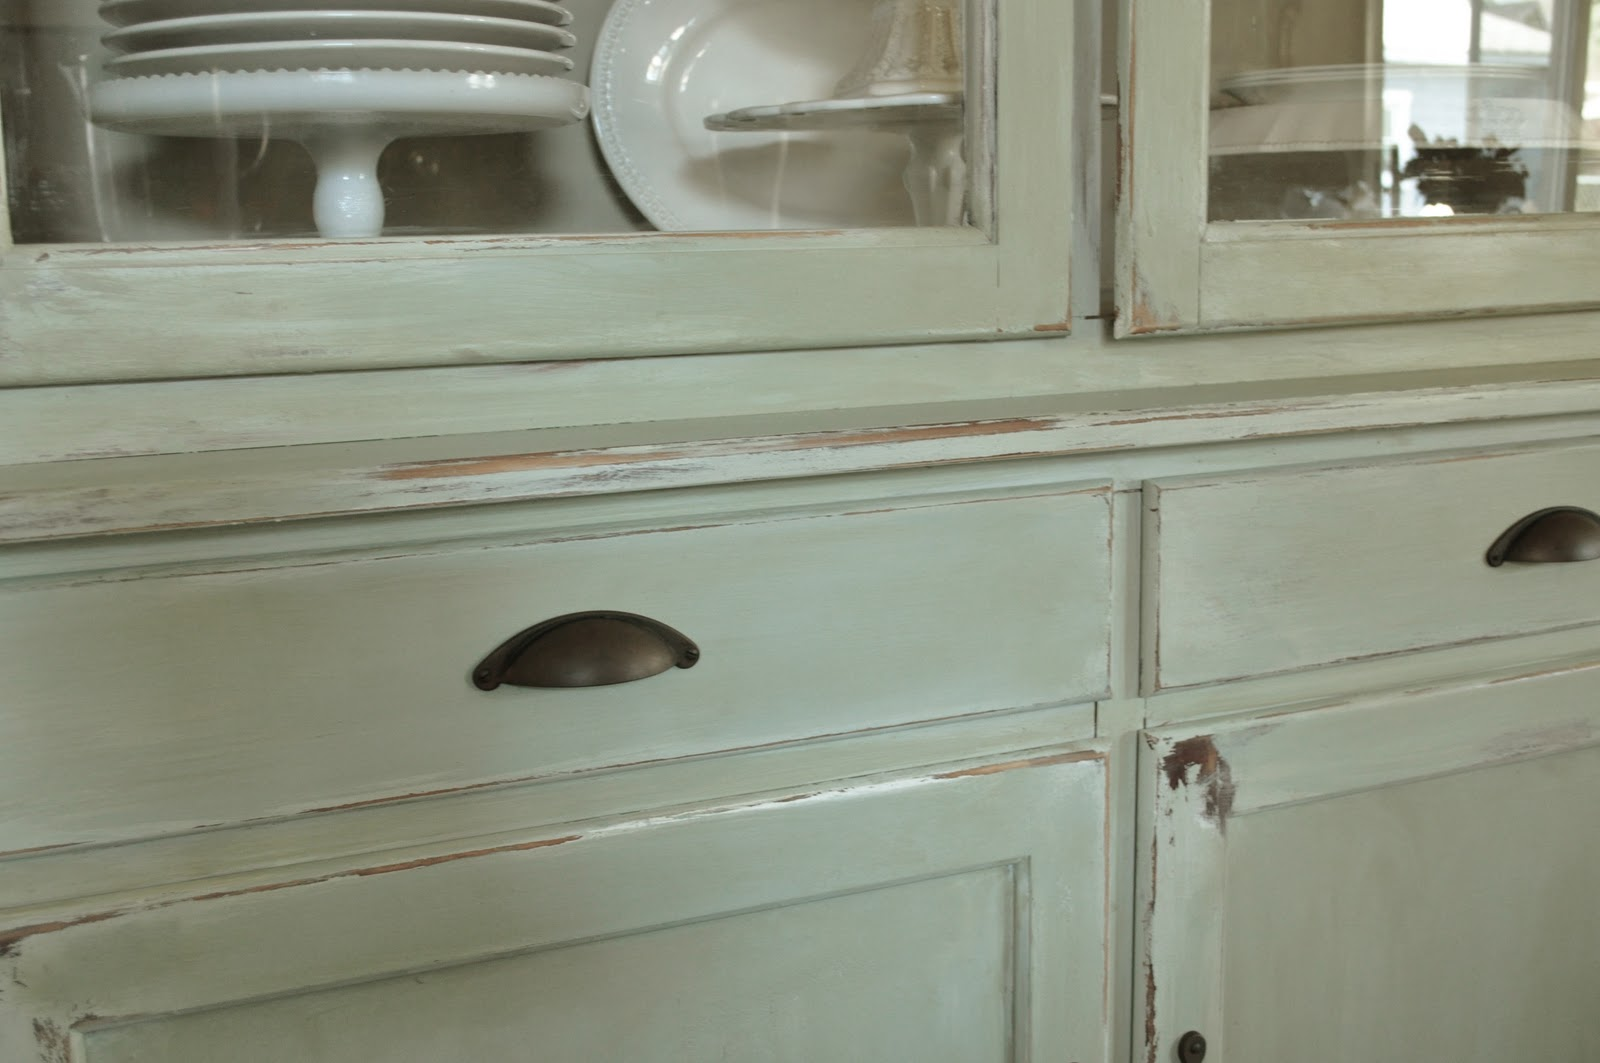 delightful How To Make Cabinets Look Old Part - 2: how to make a new peice of furinture look old with paint and distressing